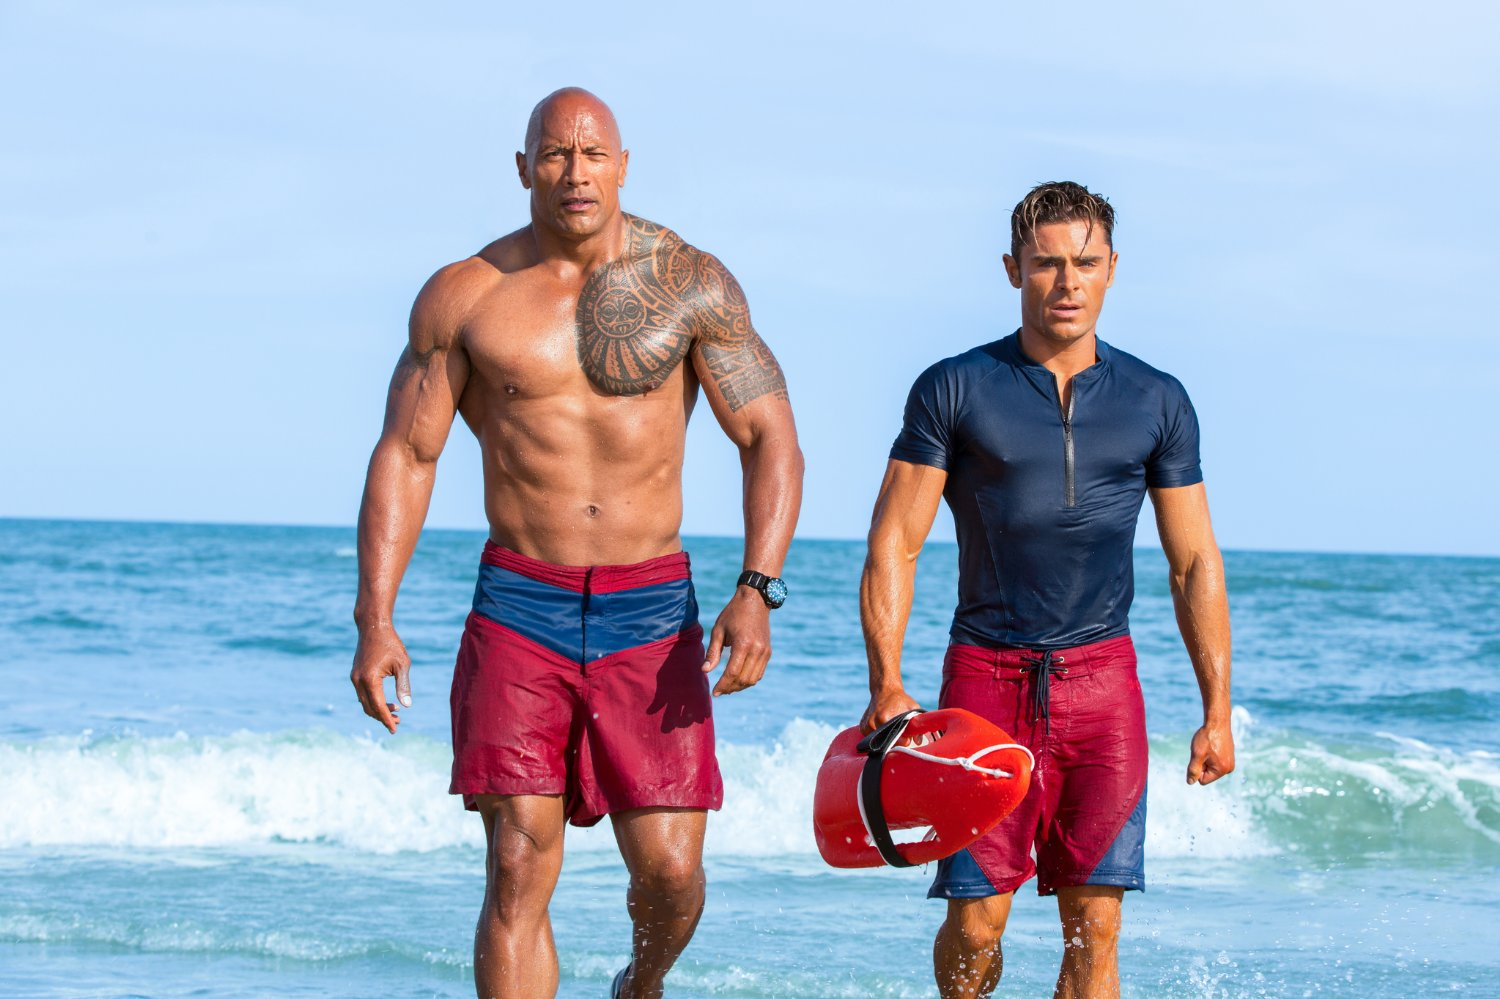 Baywatch review: Zac Efron is the funniest player in dated and occasionally awkward reboot